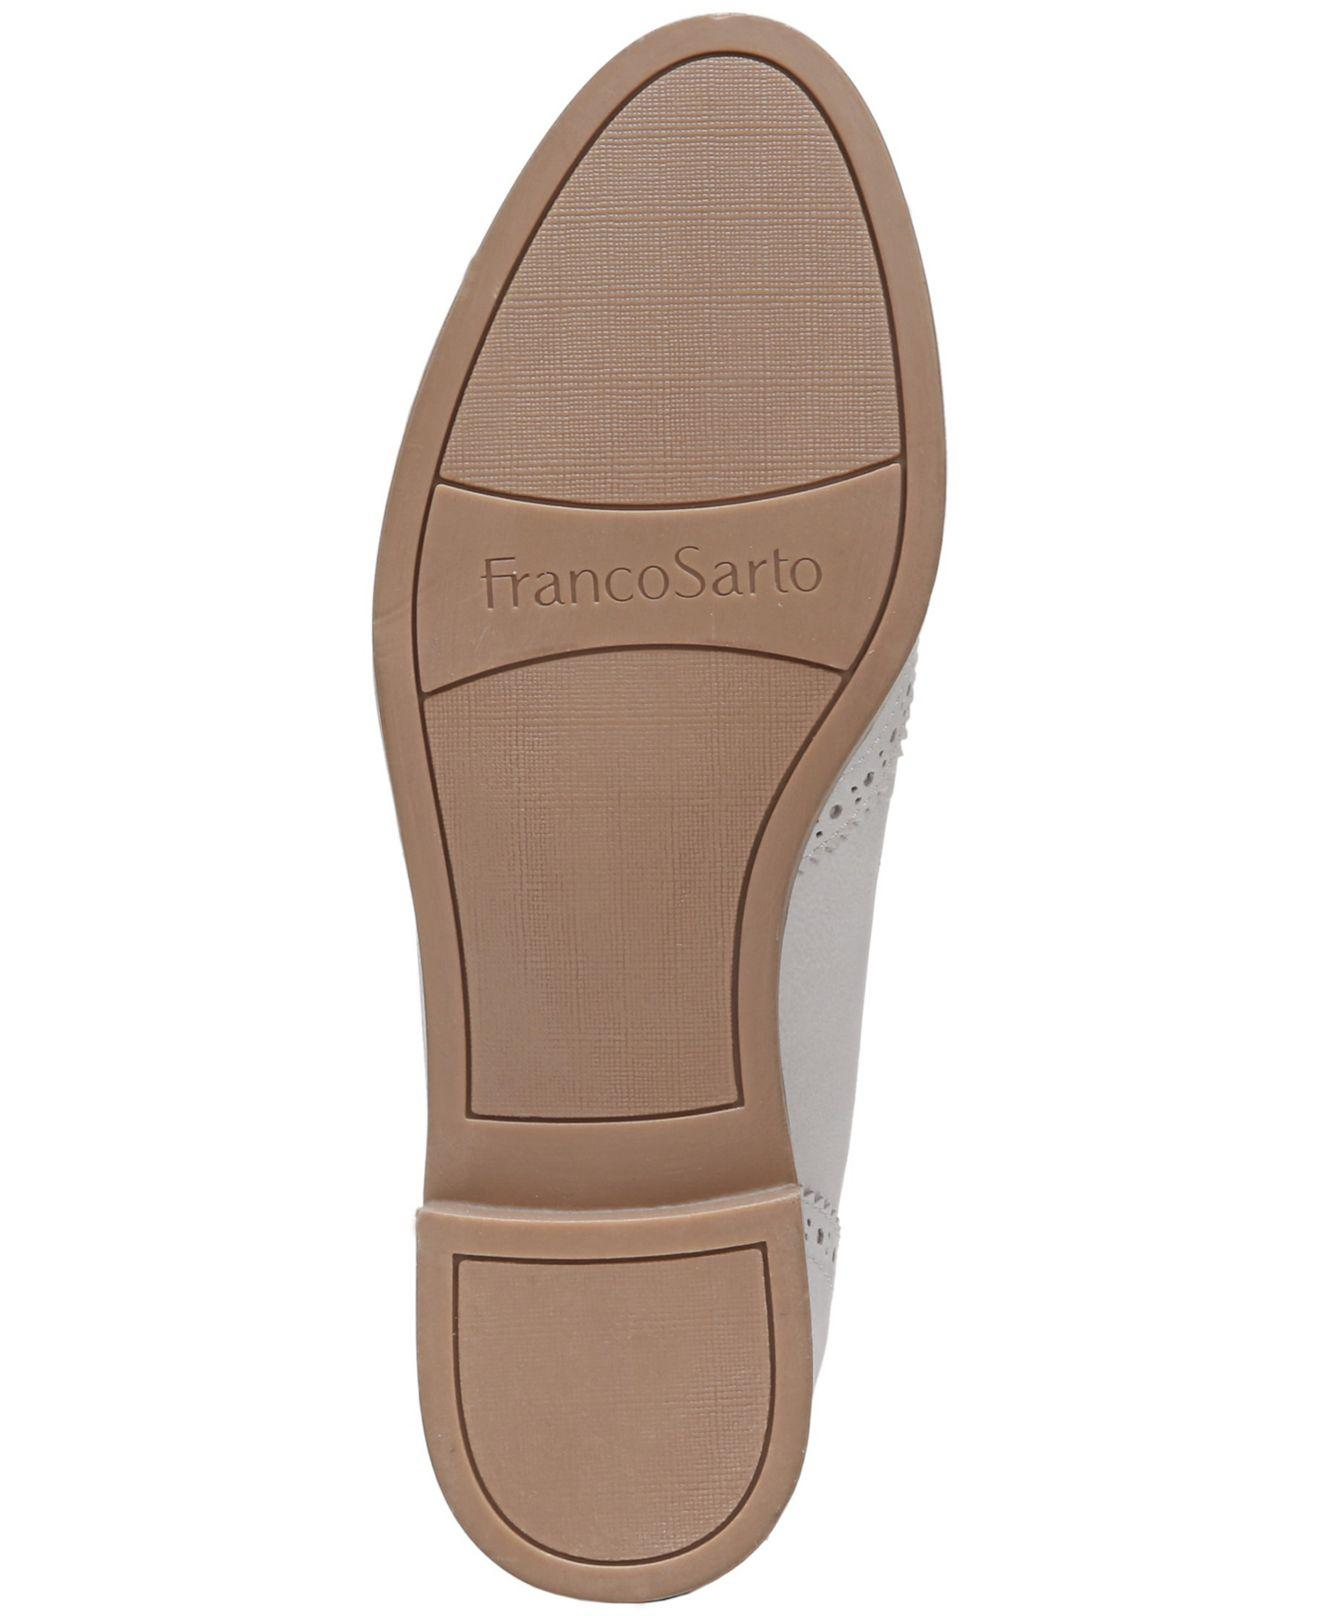 6bd80150402 Franco Sarto - Gray Haydrian Loafer - Lyst. View fullscreen